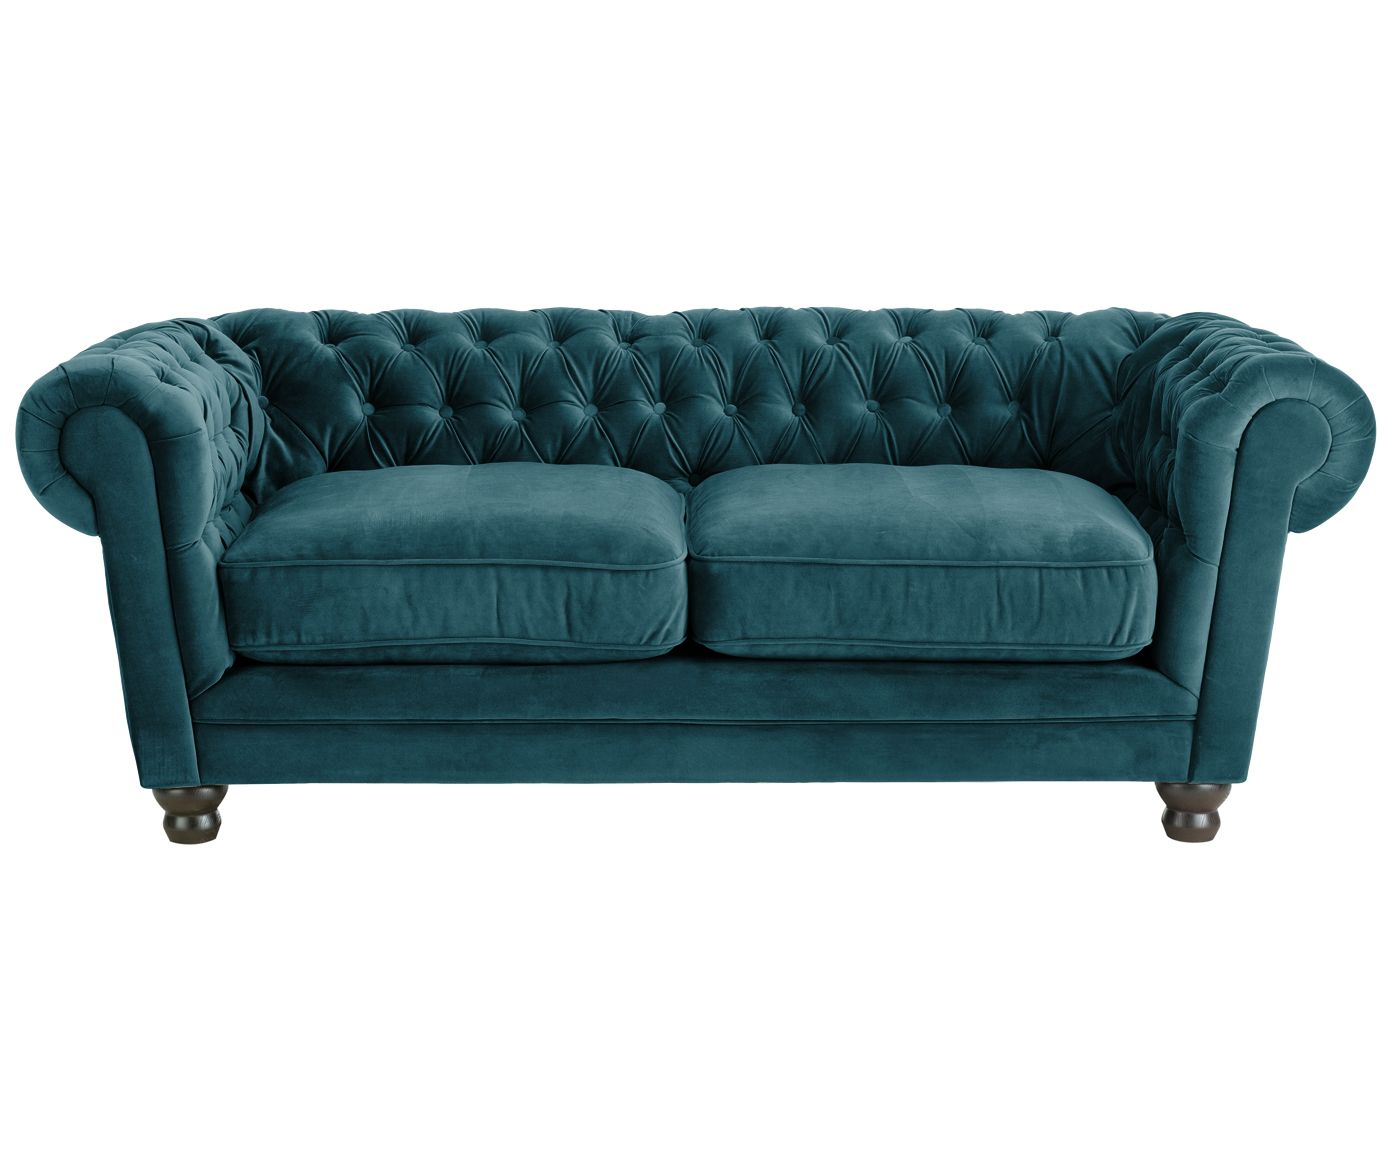 Sofa Türkis Chesterfield Samt Sofa Sally 2 Sitzer Home Ideas Pinterest